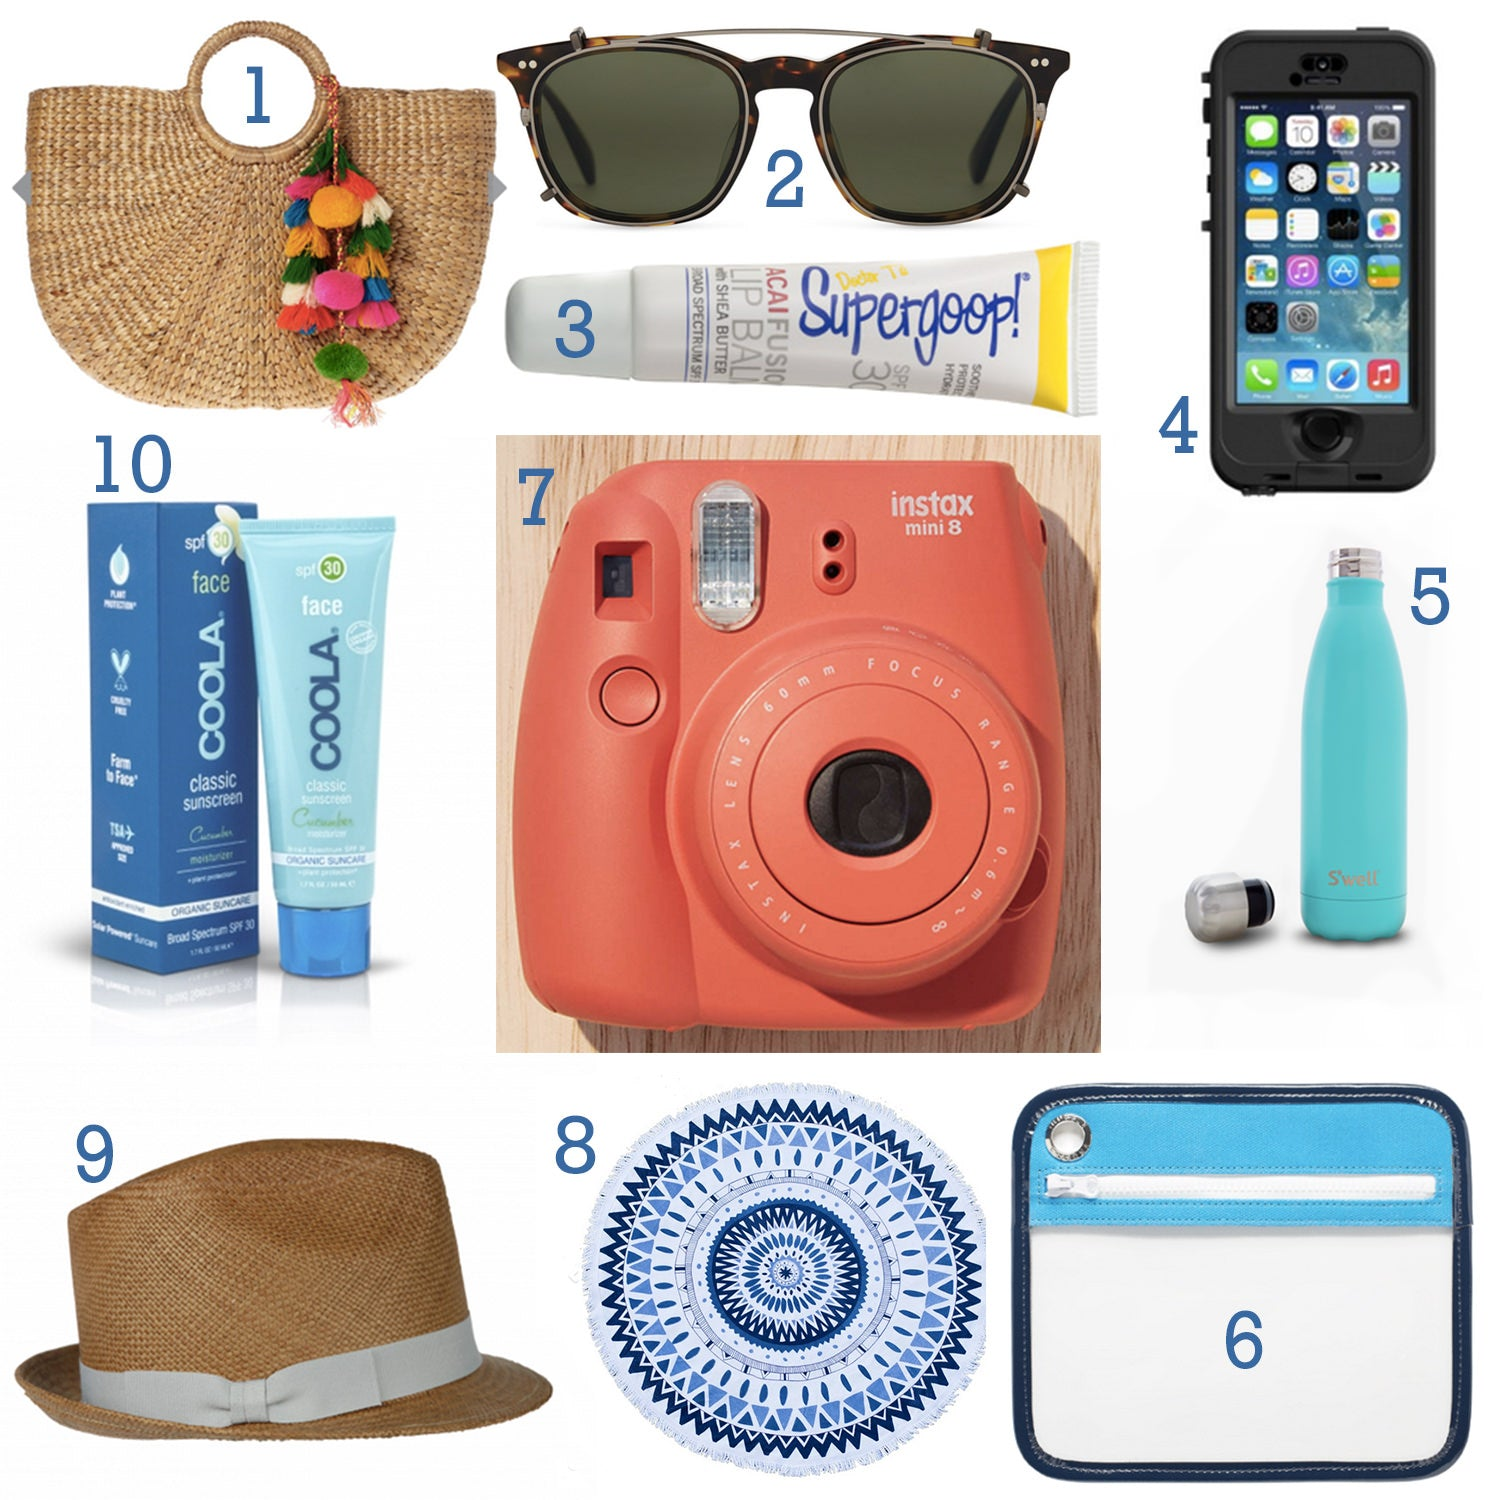 Everything but water, hat attack, Coola sunscreen, The Beach People, Polaroid Camera, Urban Outfitters, LifeProof Phone case, iPhone case, TOMS, TOMS sunglasses, sunglasses, One Truffle S'well, Lip balm, water bottle, chap stick, lip gloss, SPF, Beach